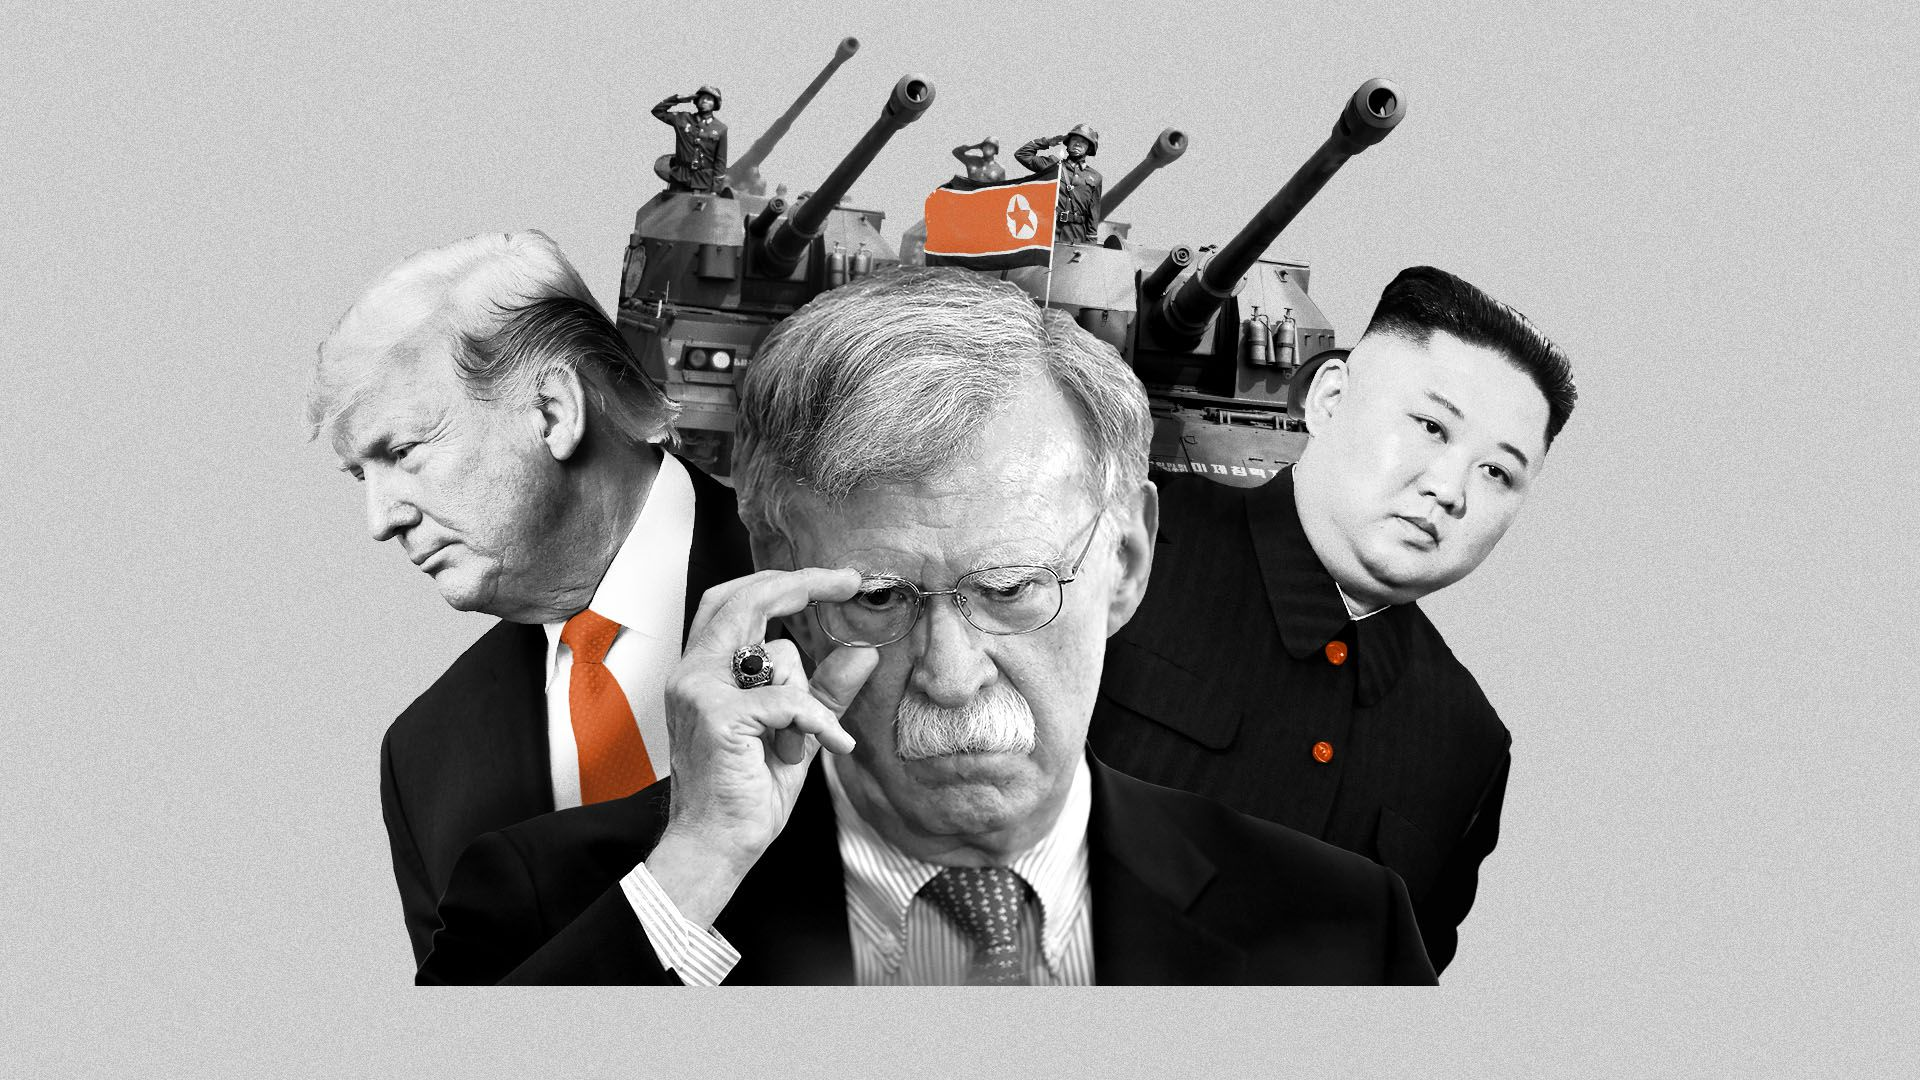 Exclusive: John Bolton hits Trump for bluffing on North Korea nukes - Axios